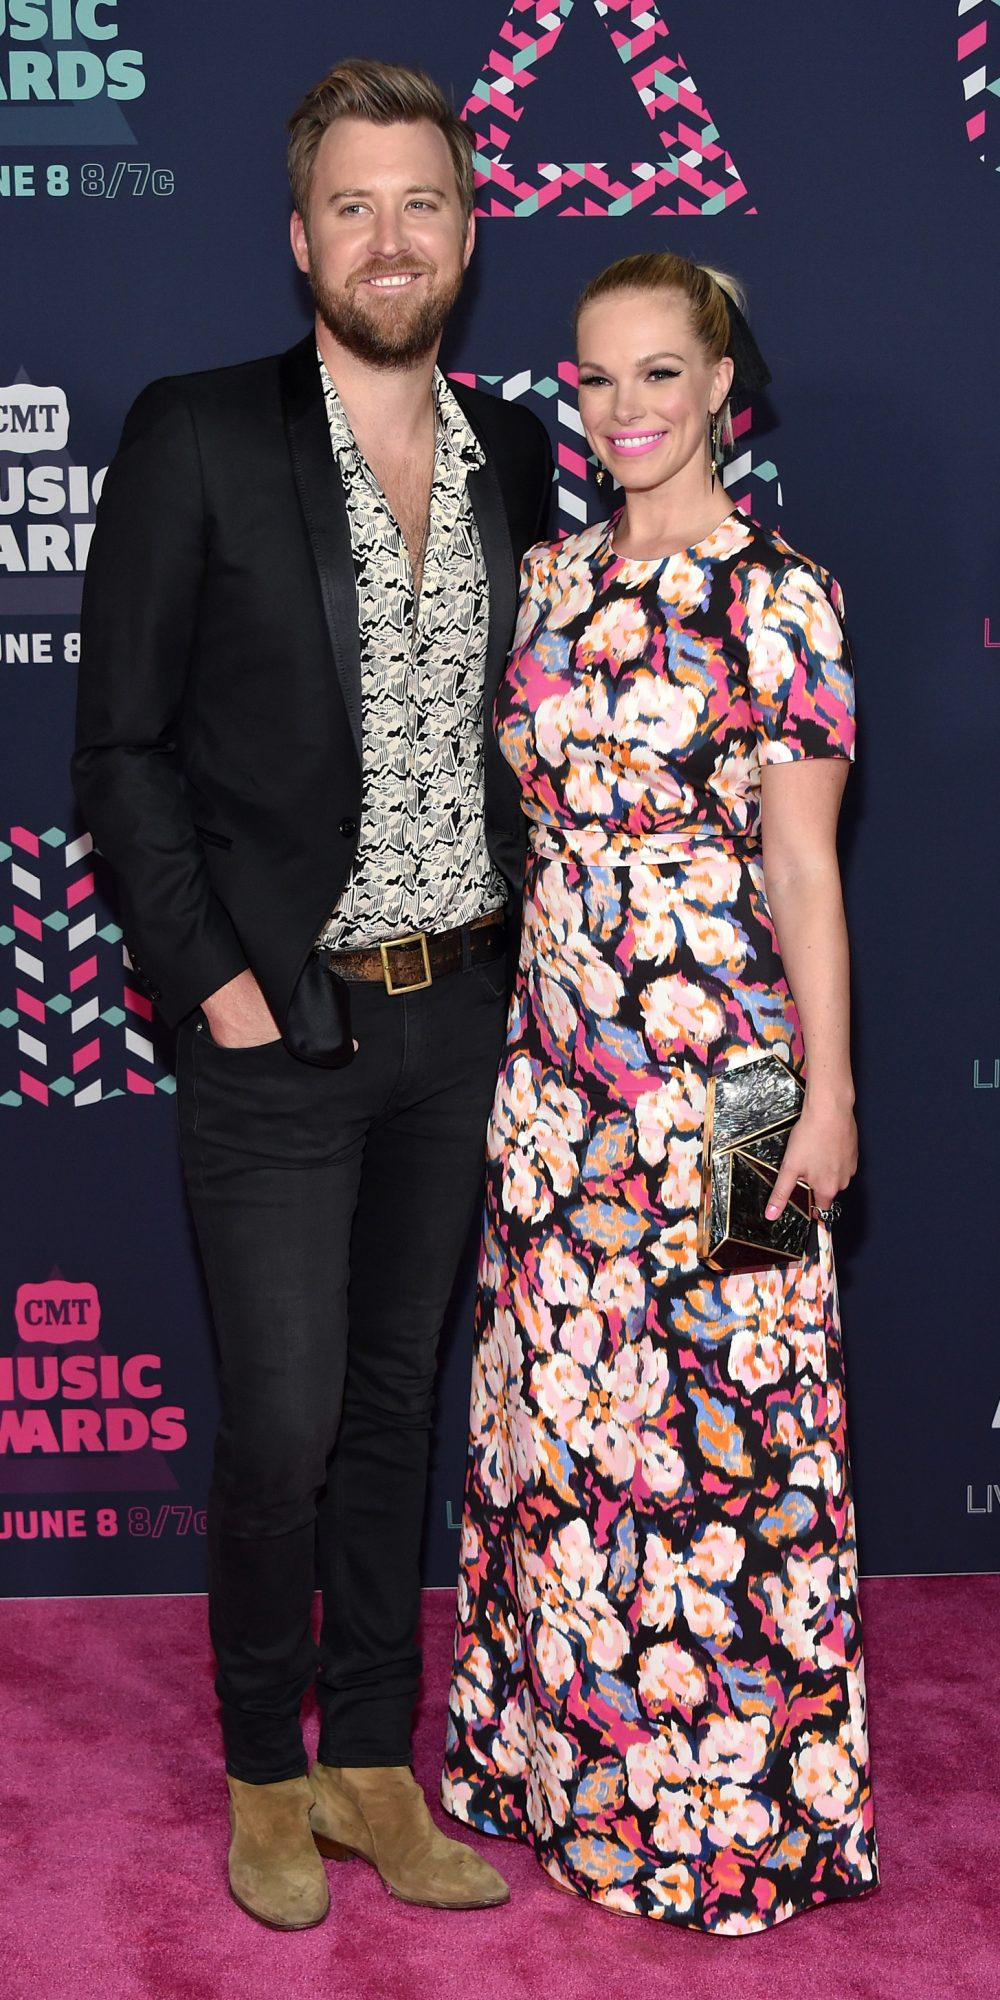 Charles Kelley and Cassie McConnell